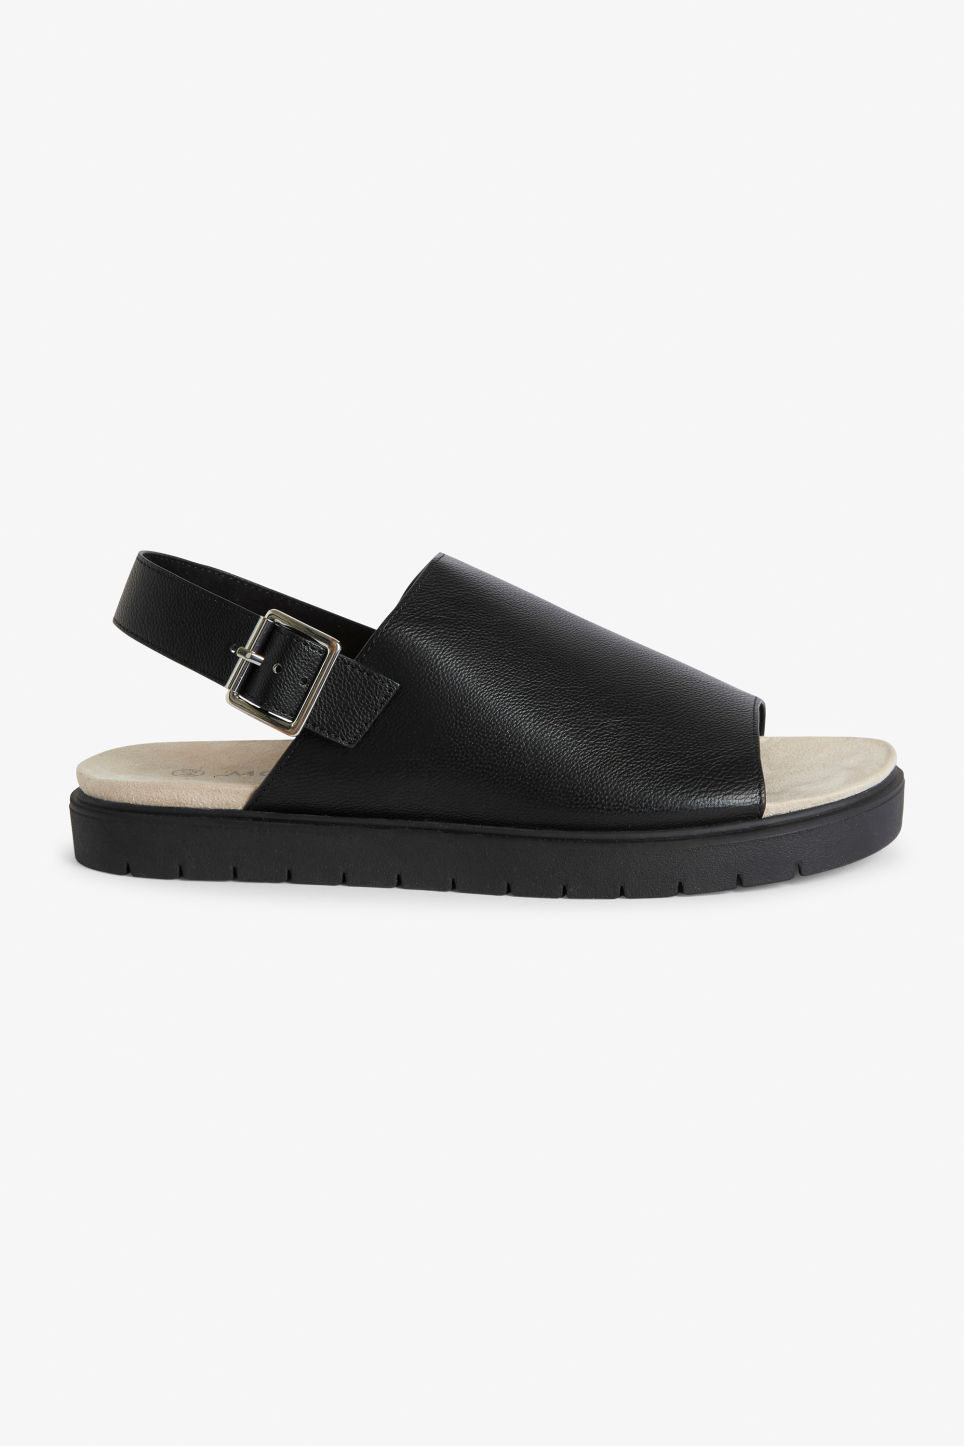 Detailed image of Monki slingback sandals in black